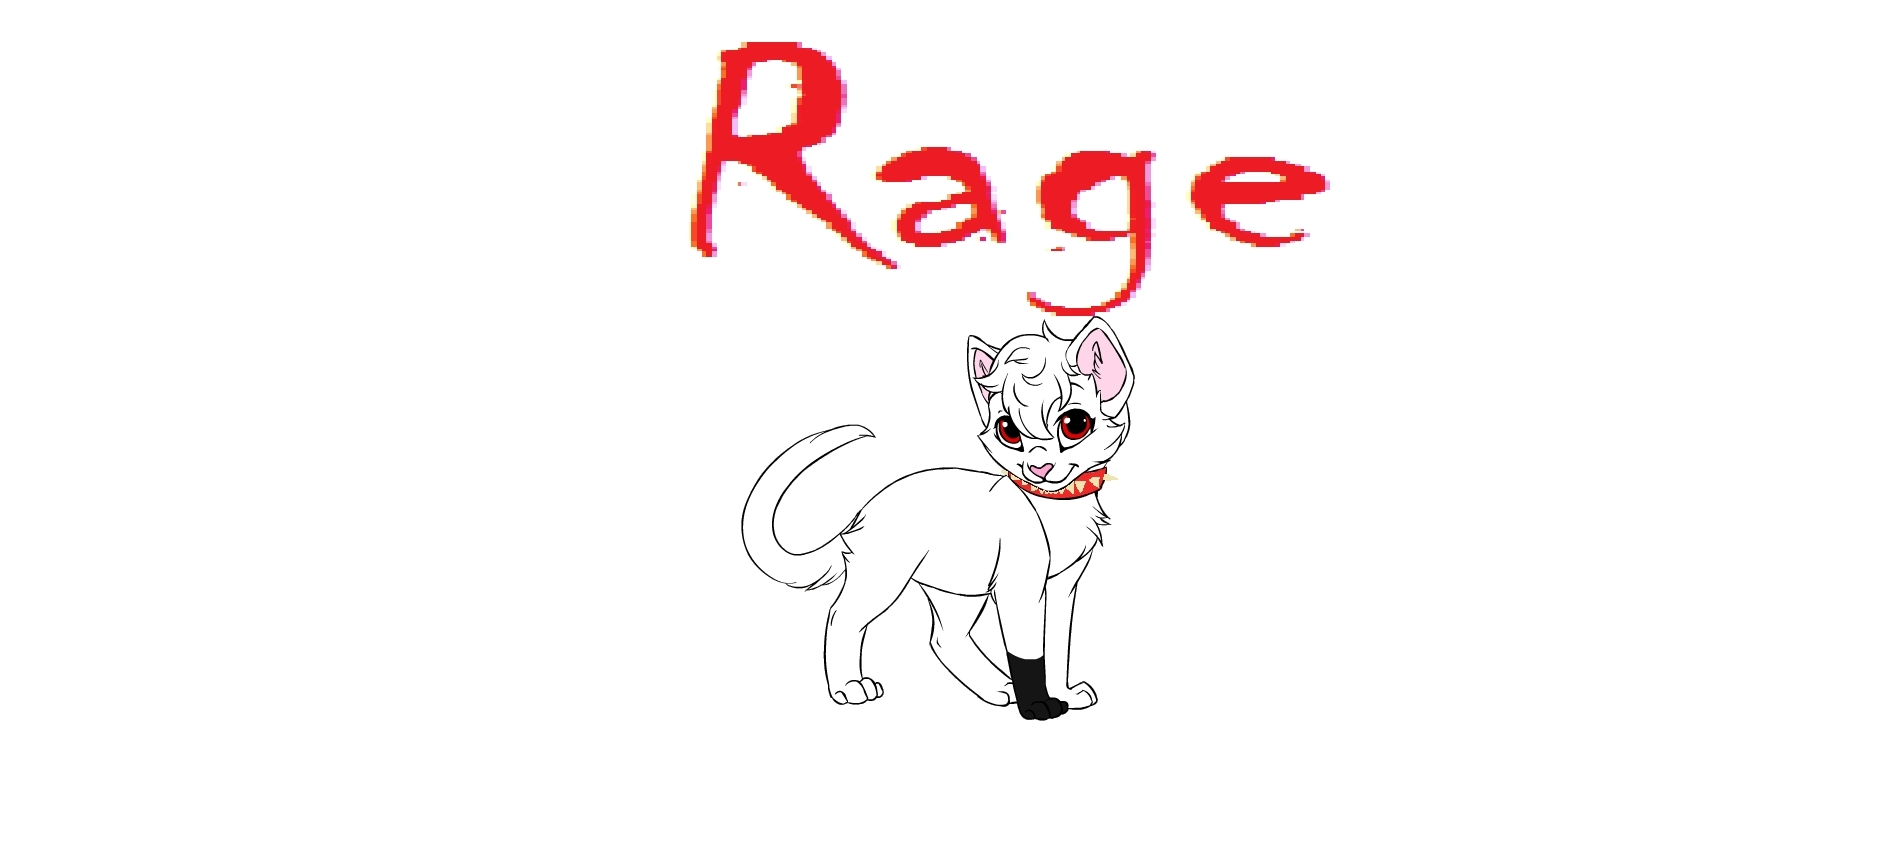 All Things Warrior Cat Images Rage Scourge 2 Hd Wallpaper